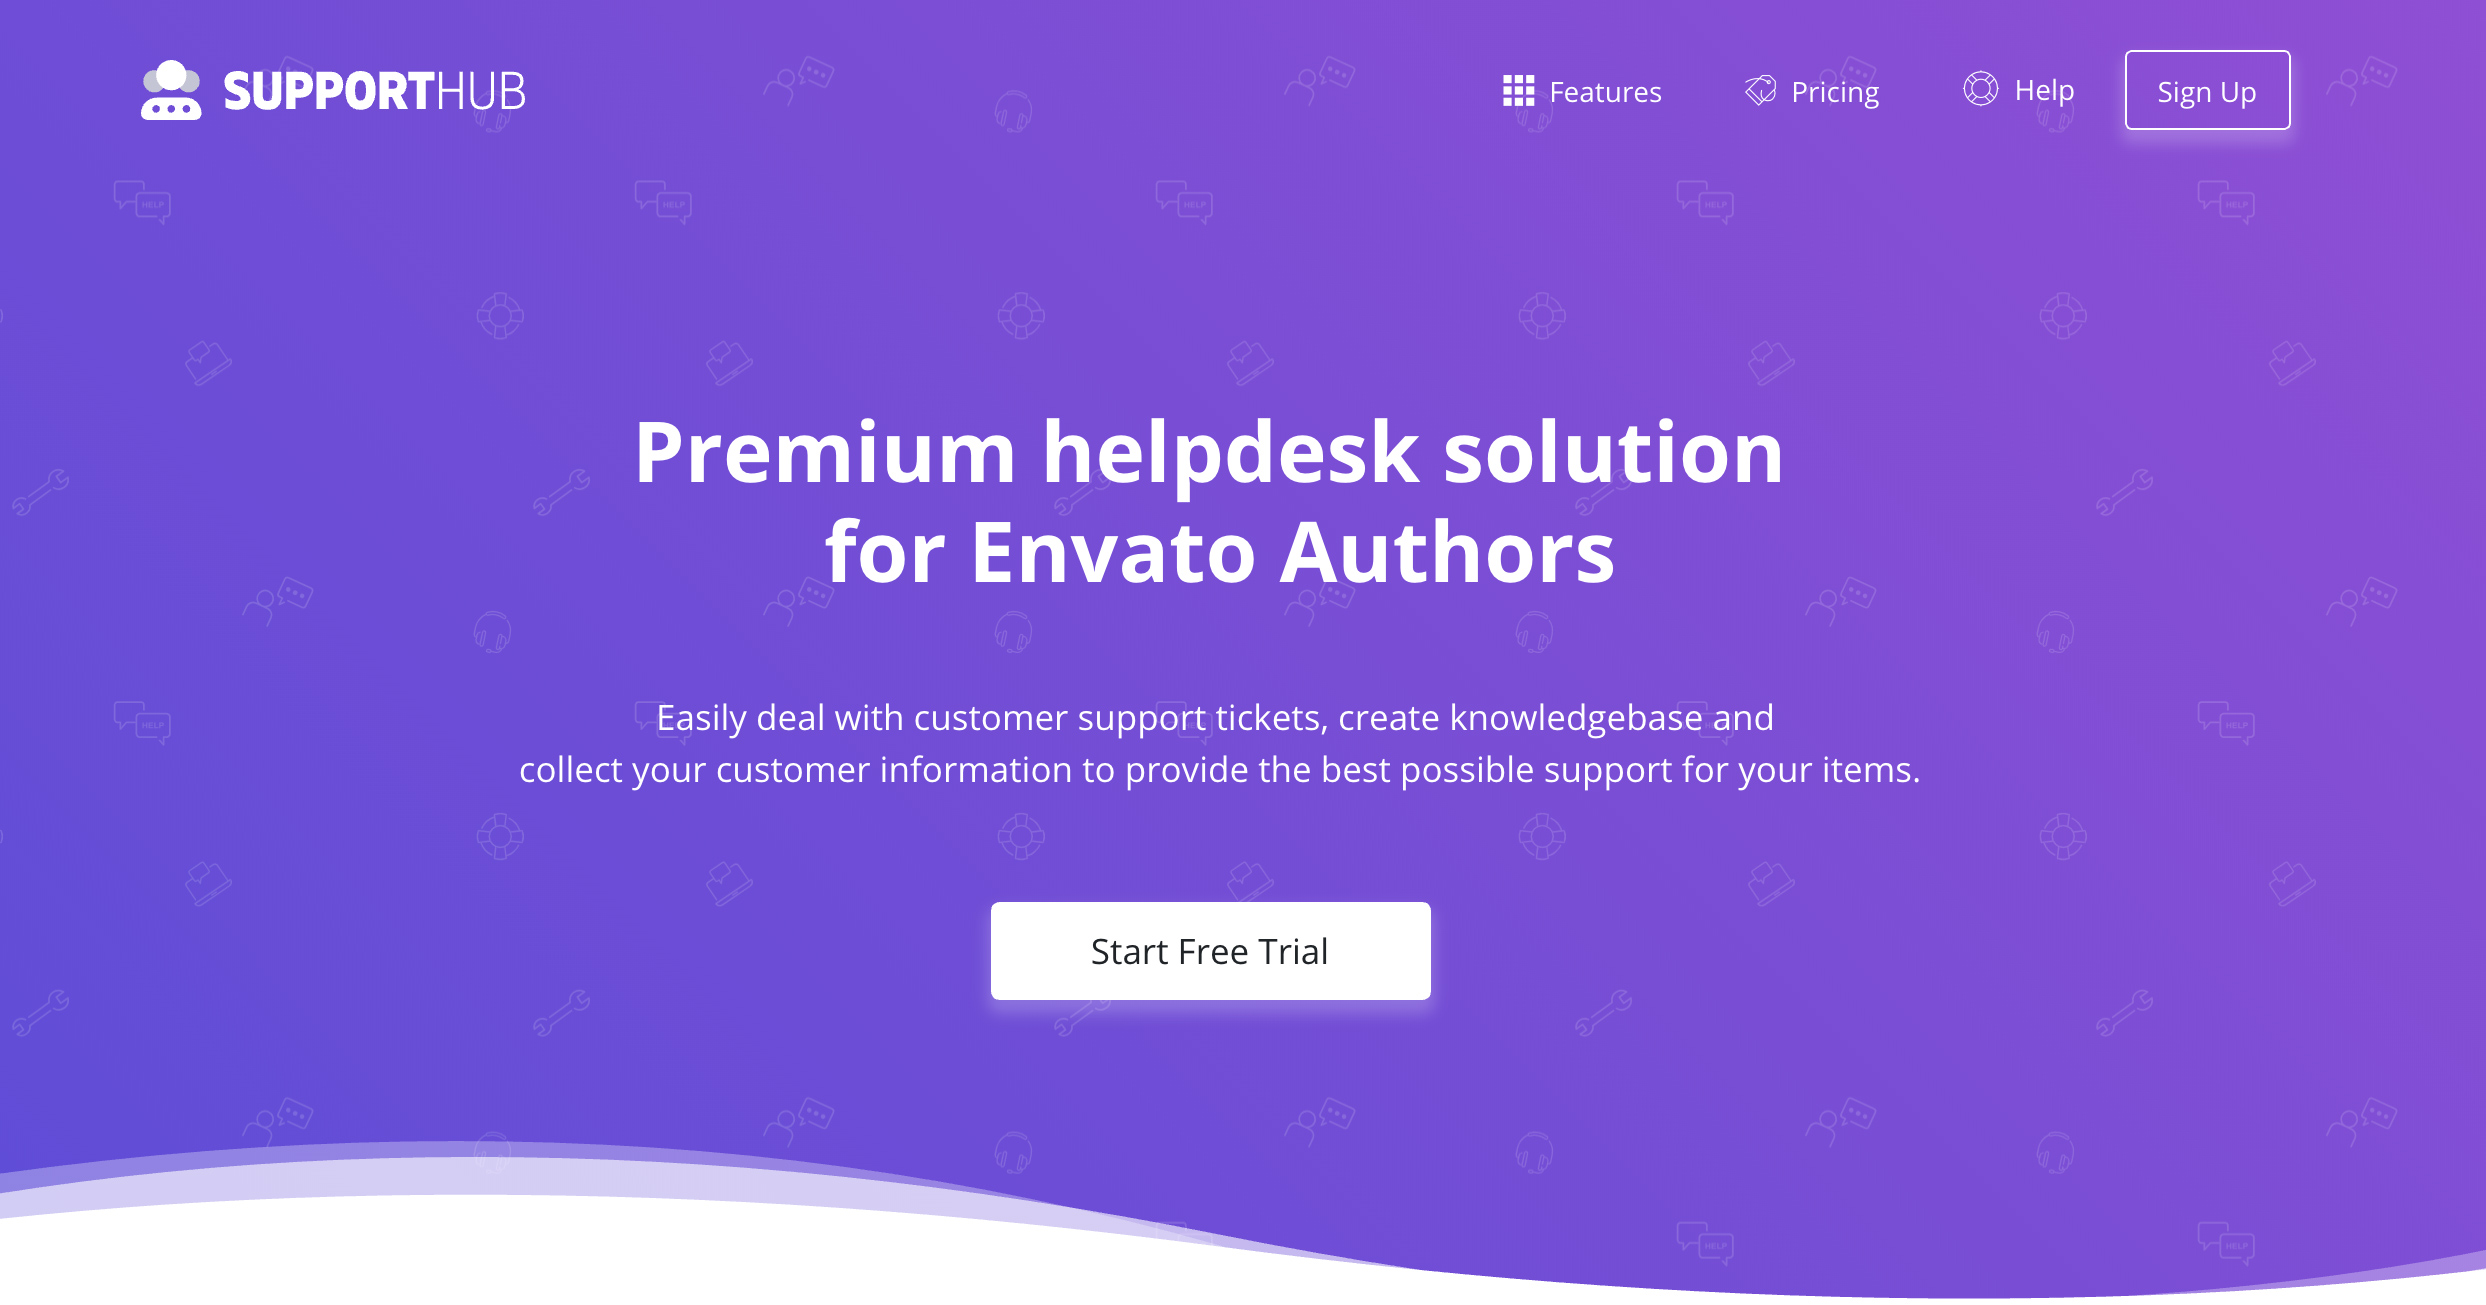 Support Hub - Premium helpdesk solution for Envato Authors, Small